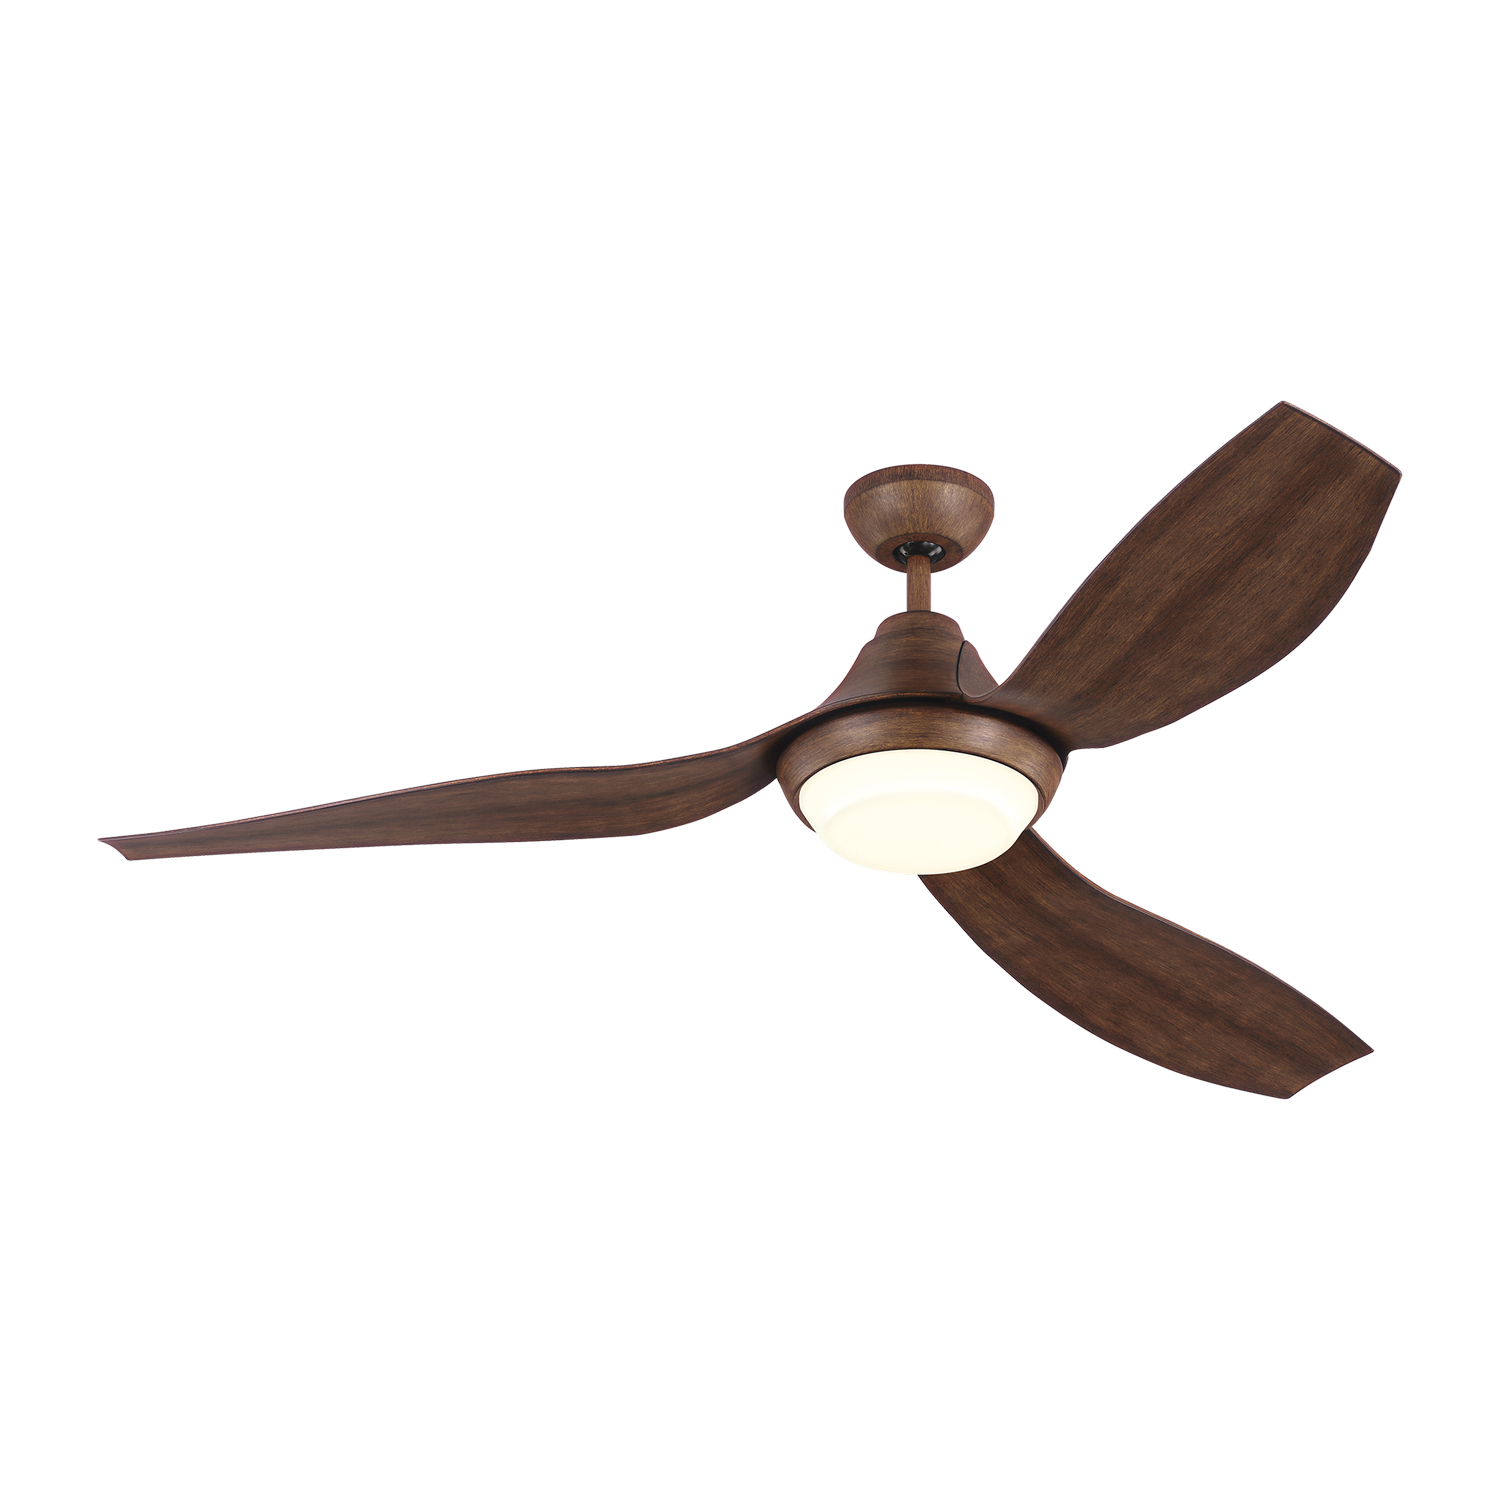 56 inchCeiling Fan from the Avvo collection by Monte Carlo 3AVOR56KOAD V1